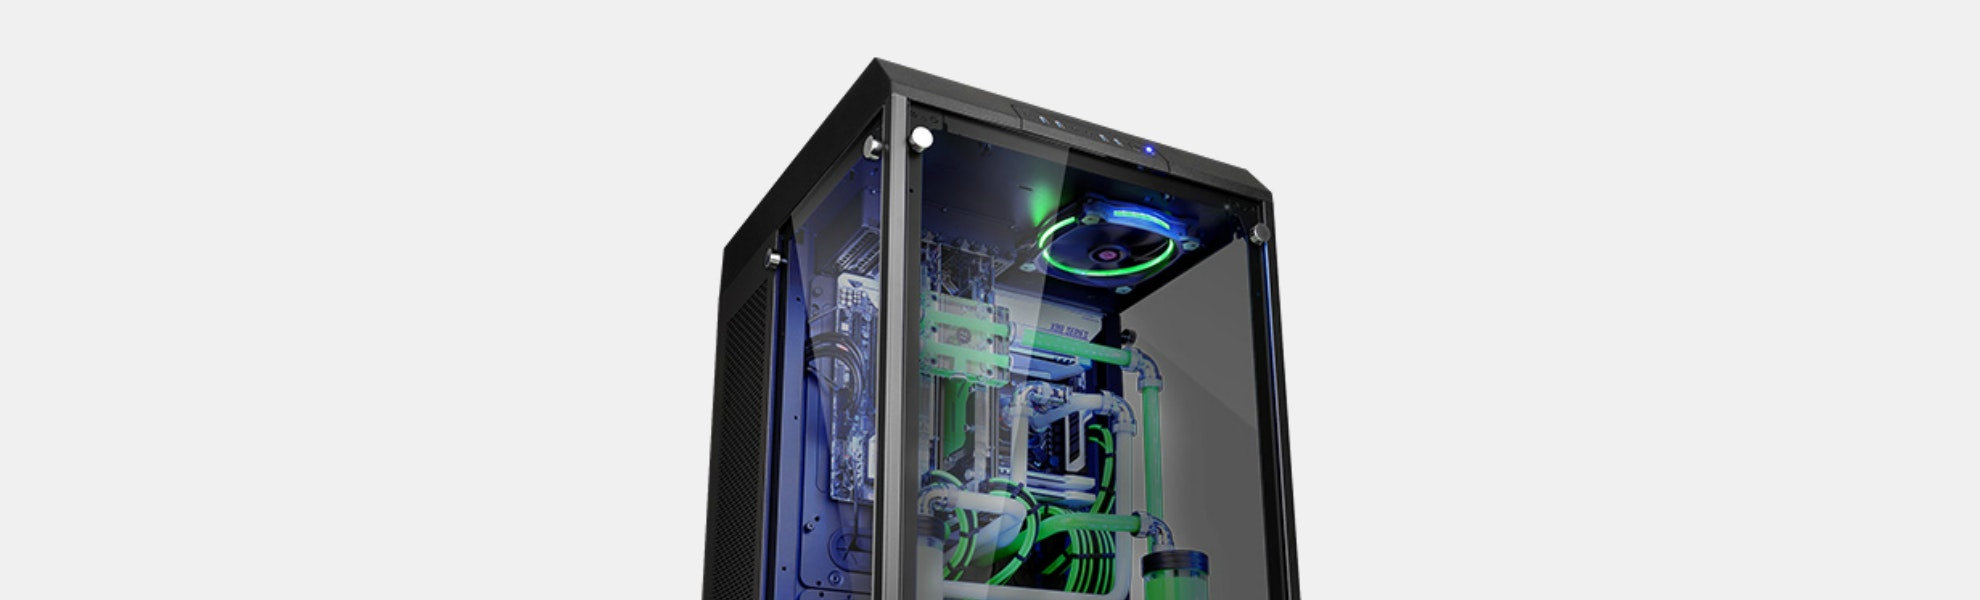 TT Tower 900 E-ATX Full Tower Gaming Case